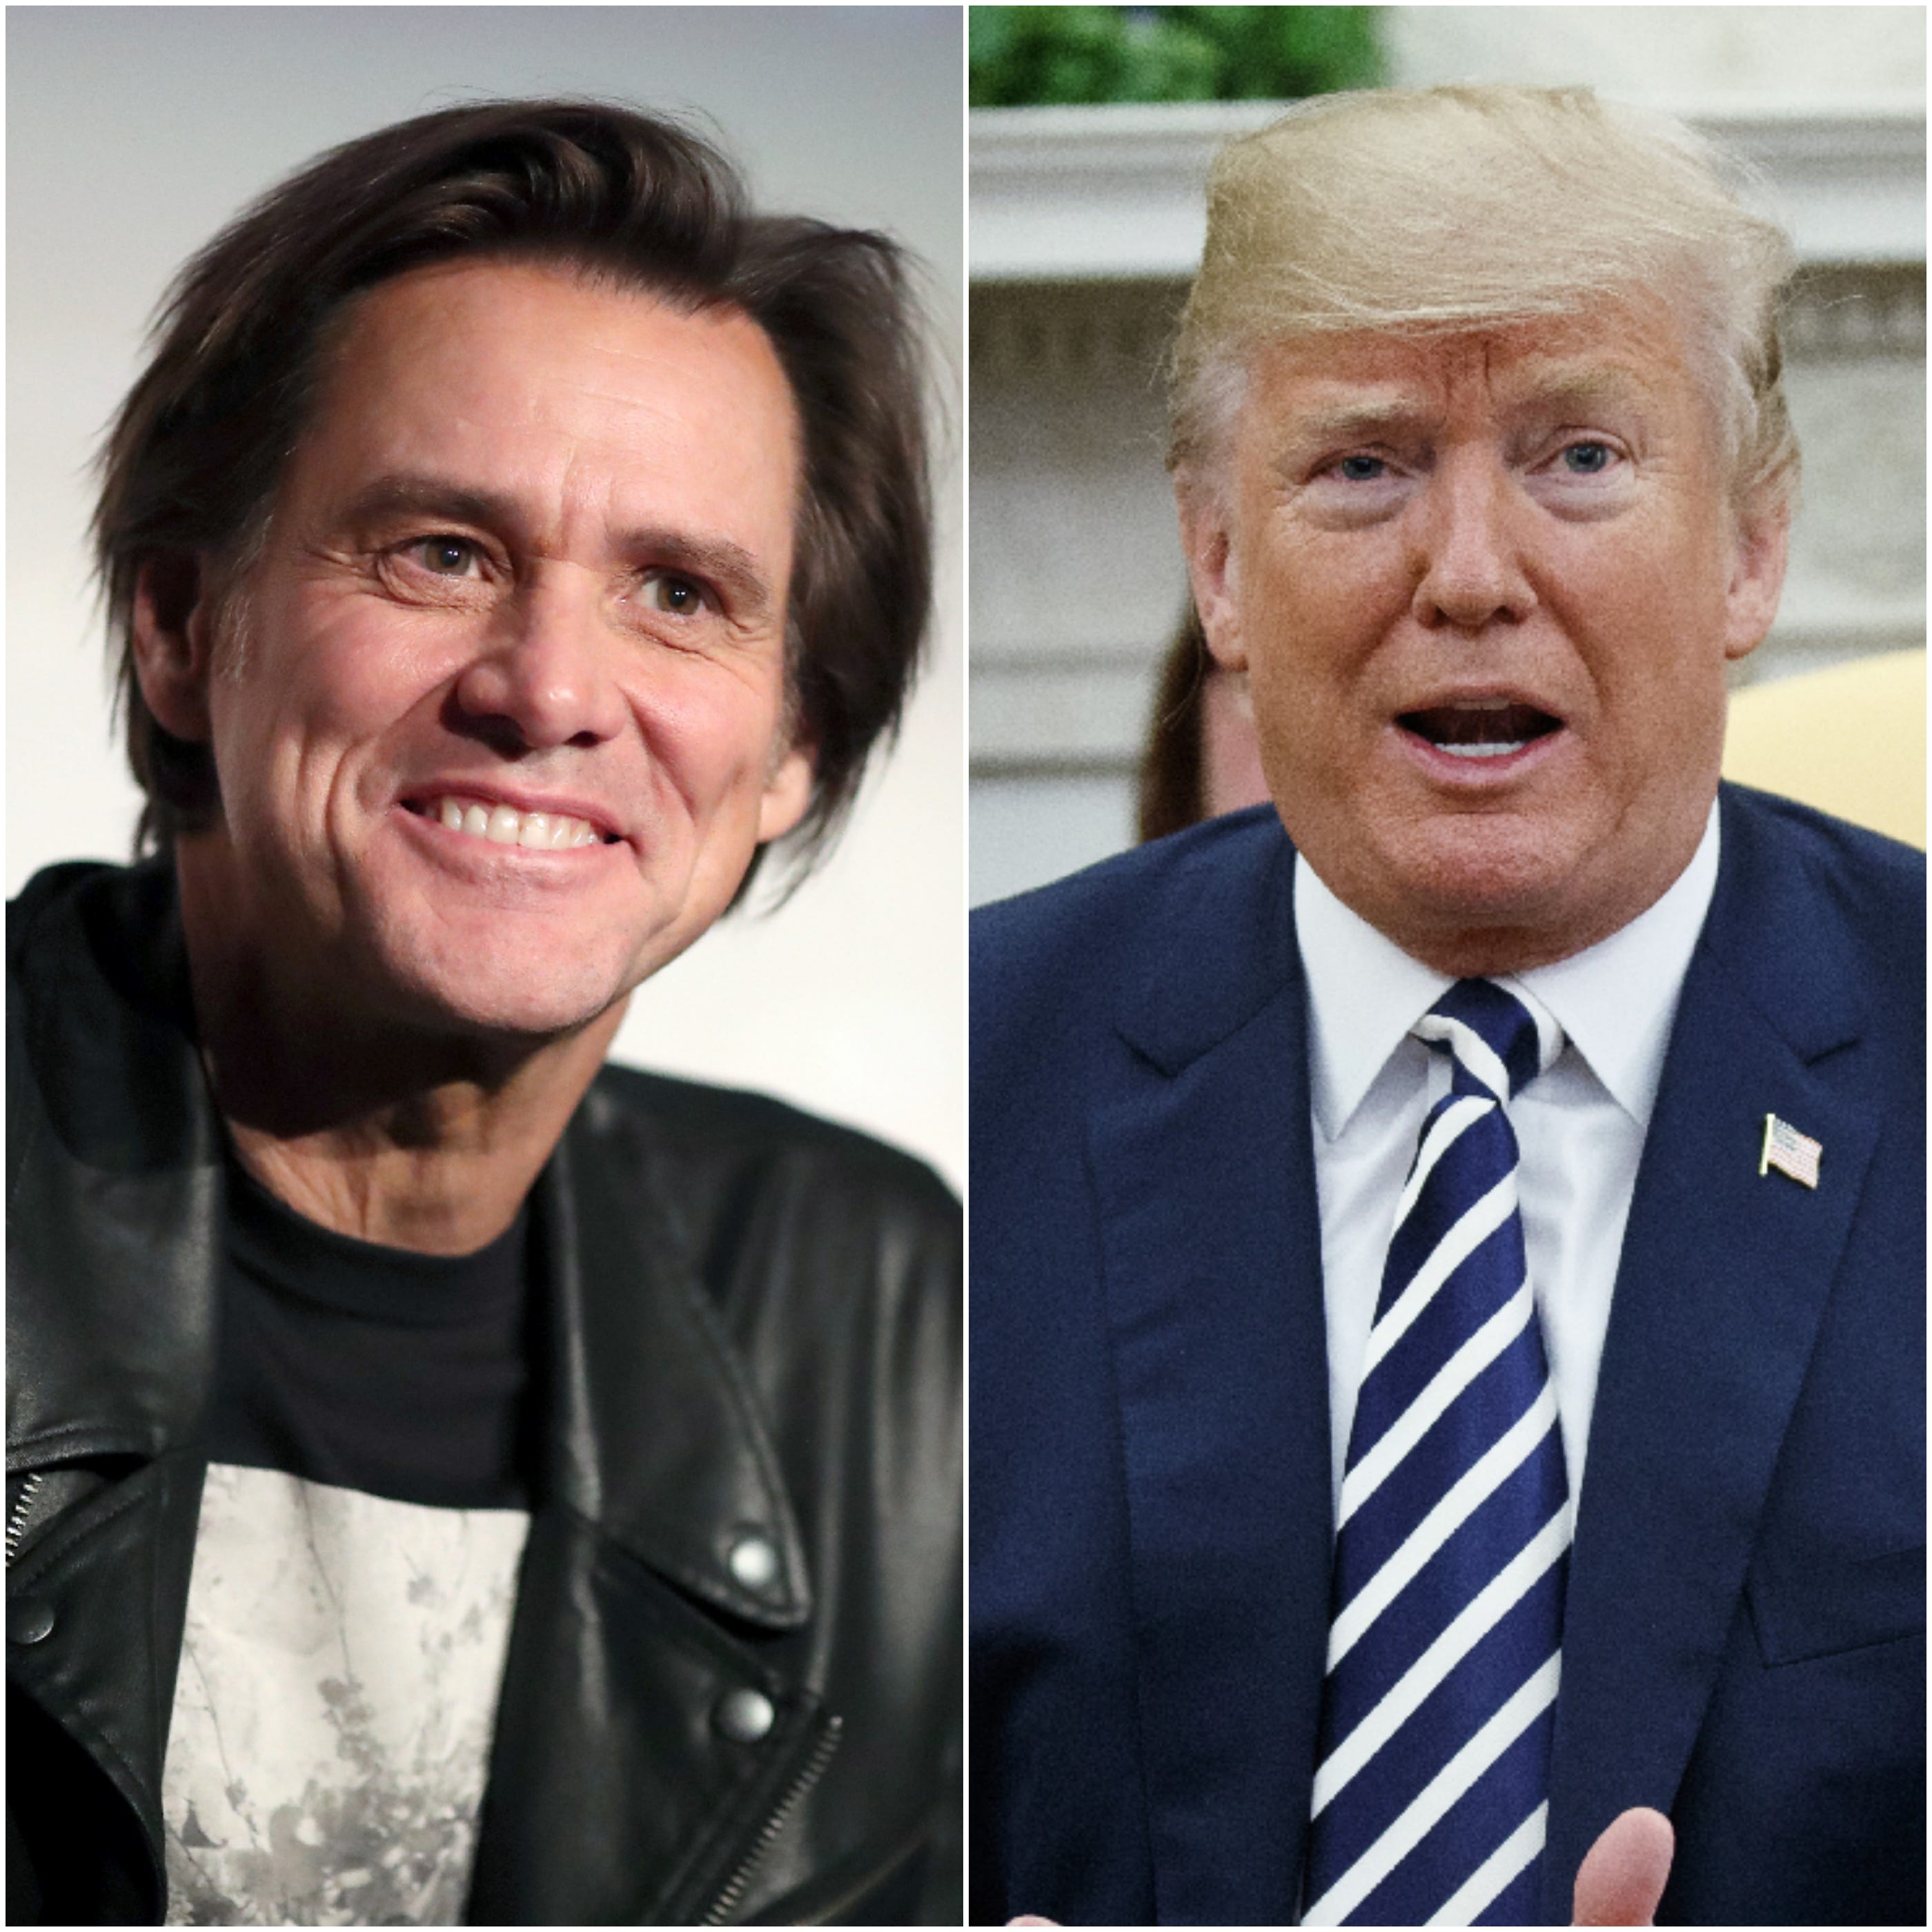 Photo Russian double Jim Carrey has created a furor in the web 08/09/2016 37